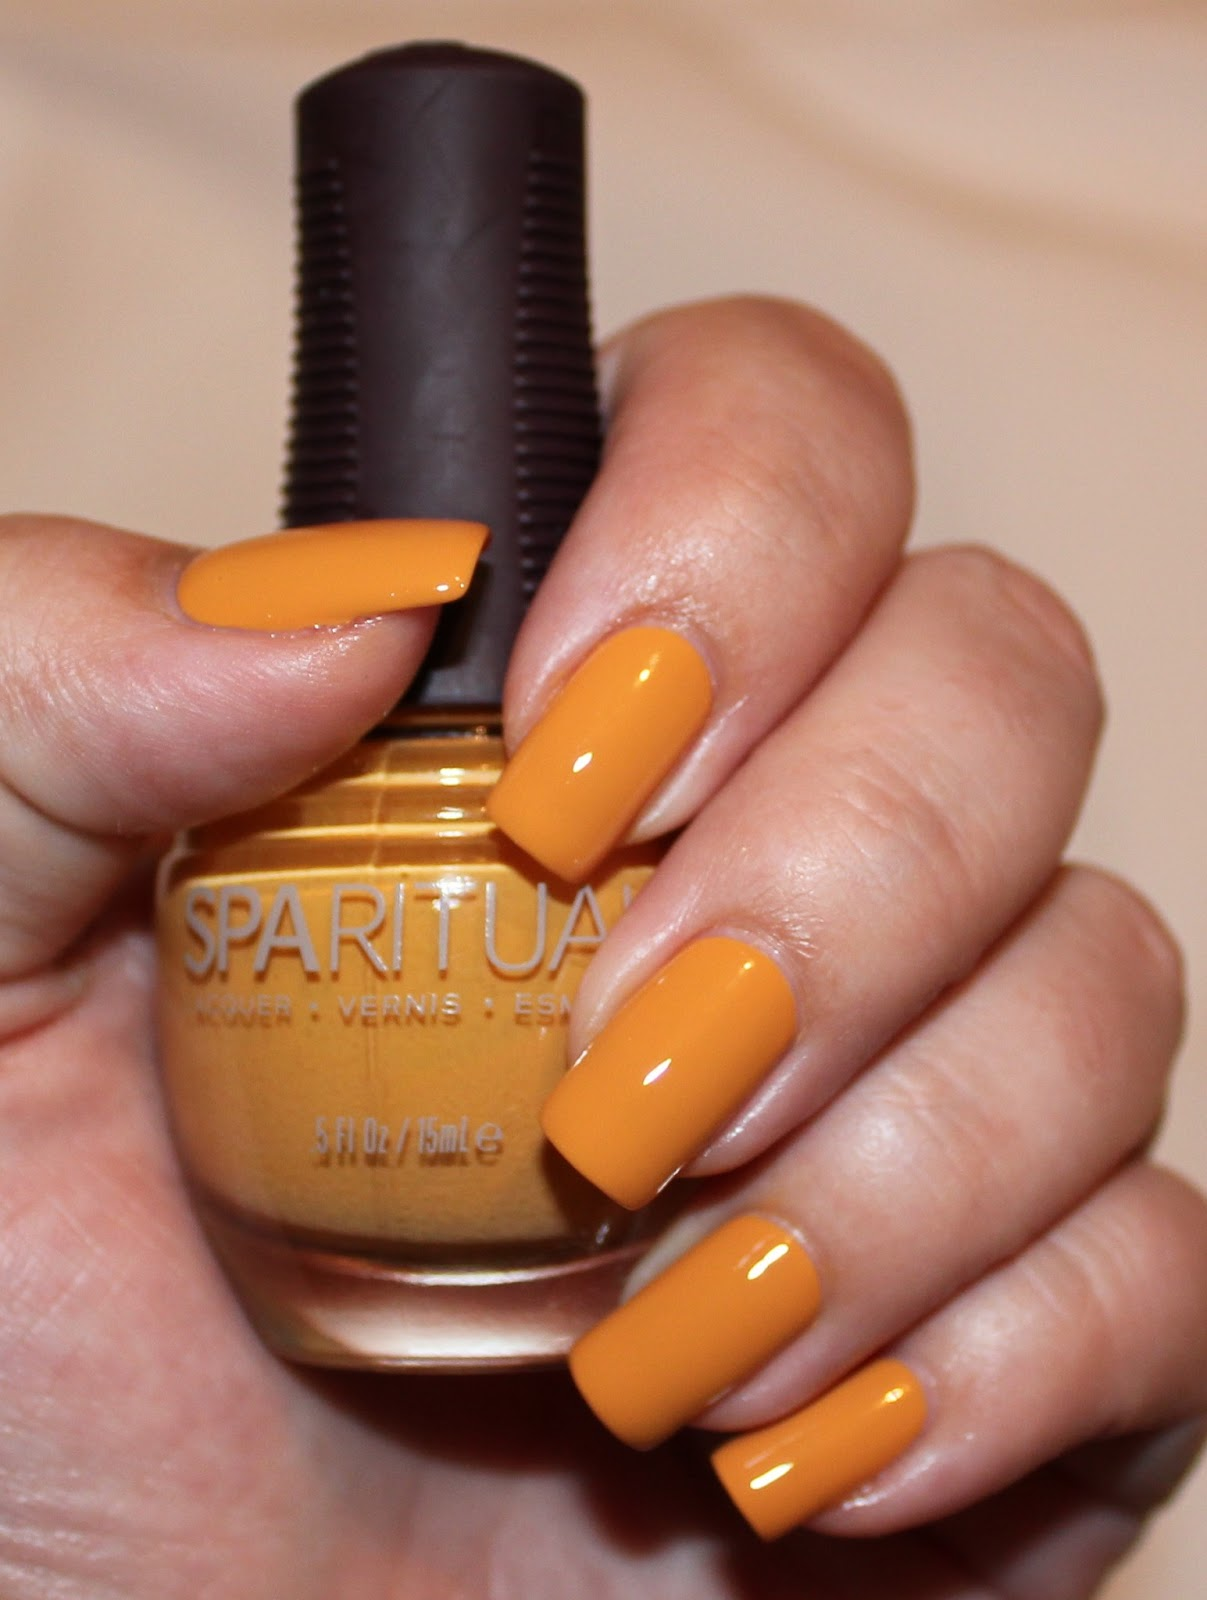 Sparitual Positive Vibe With Flash Indoors, It Really Is Mustard Isn't